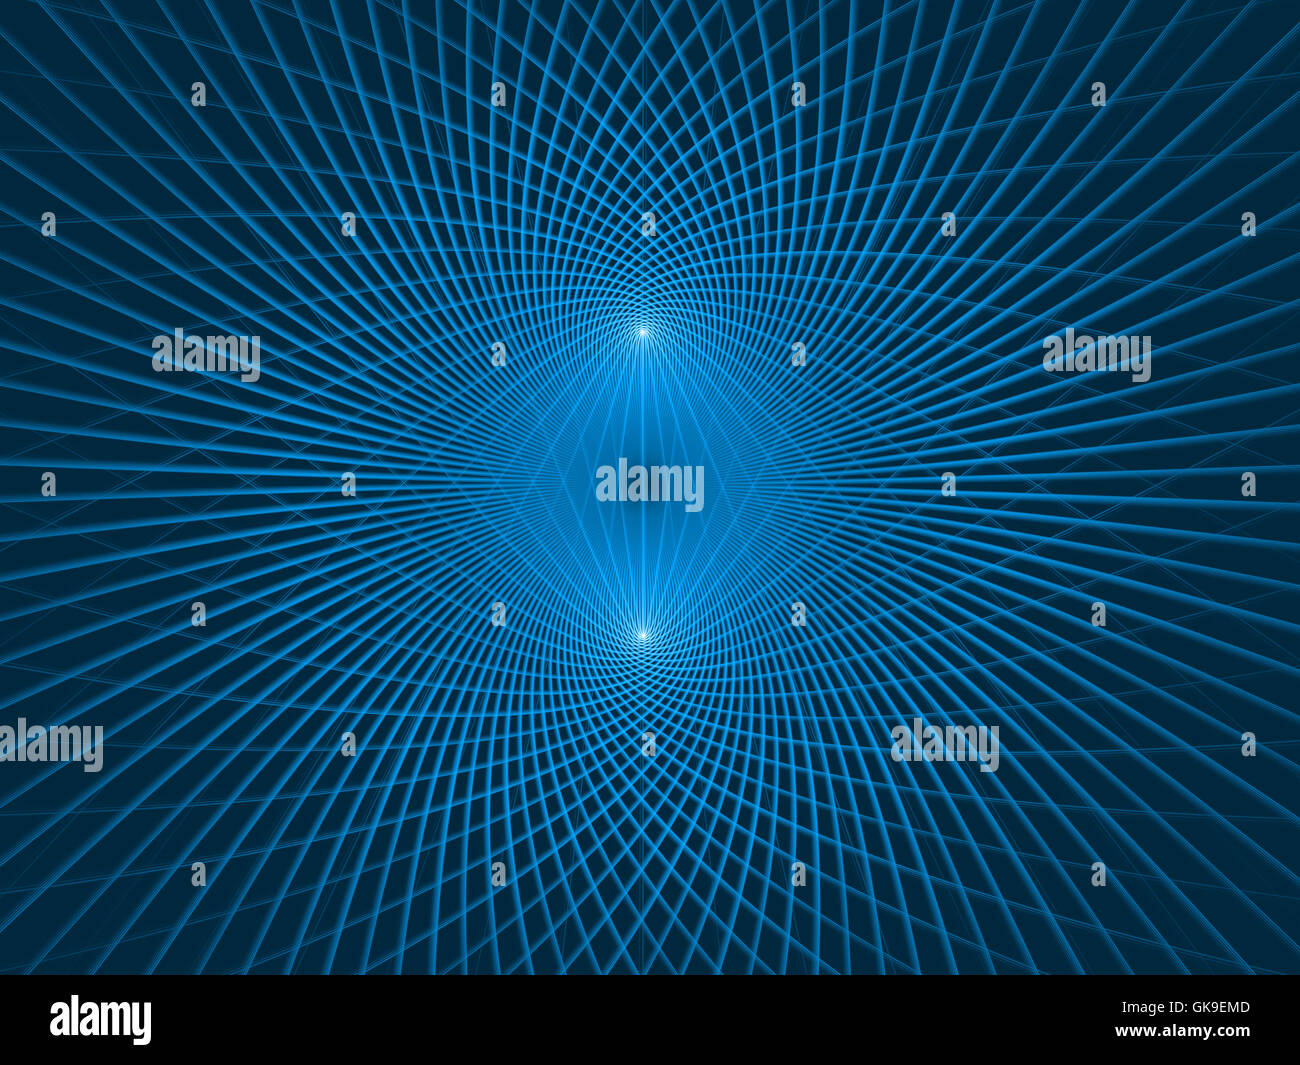 symmetry geometry abstract - Stock Image